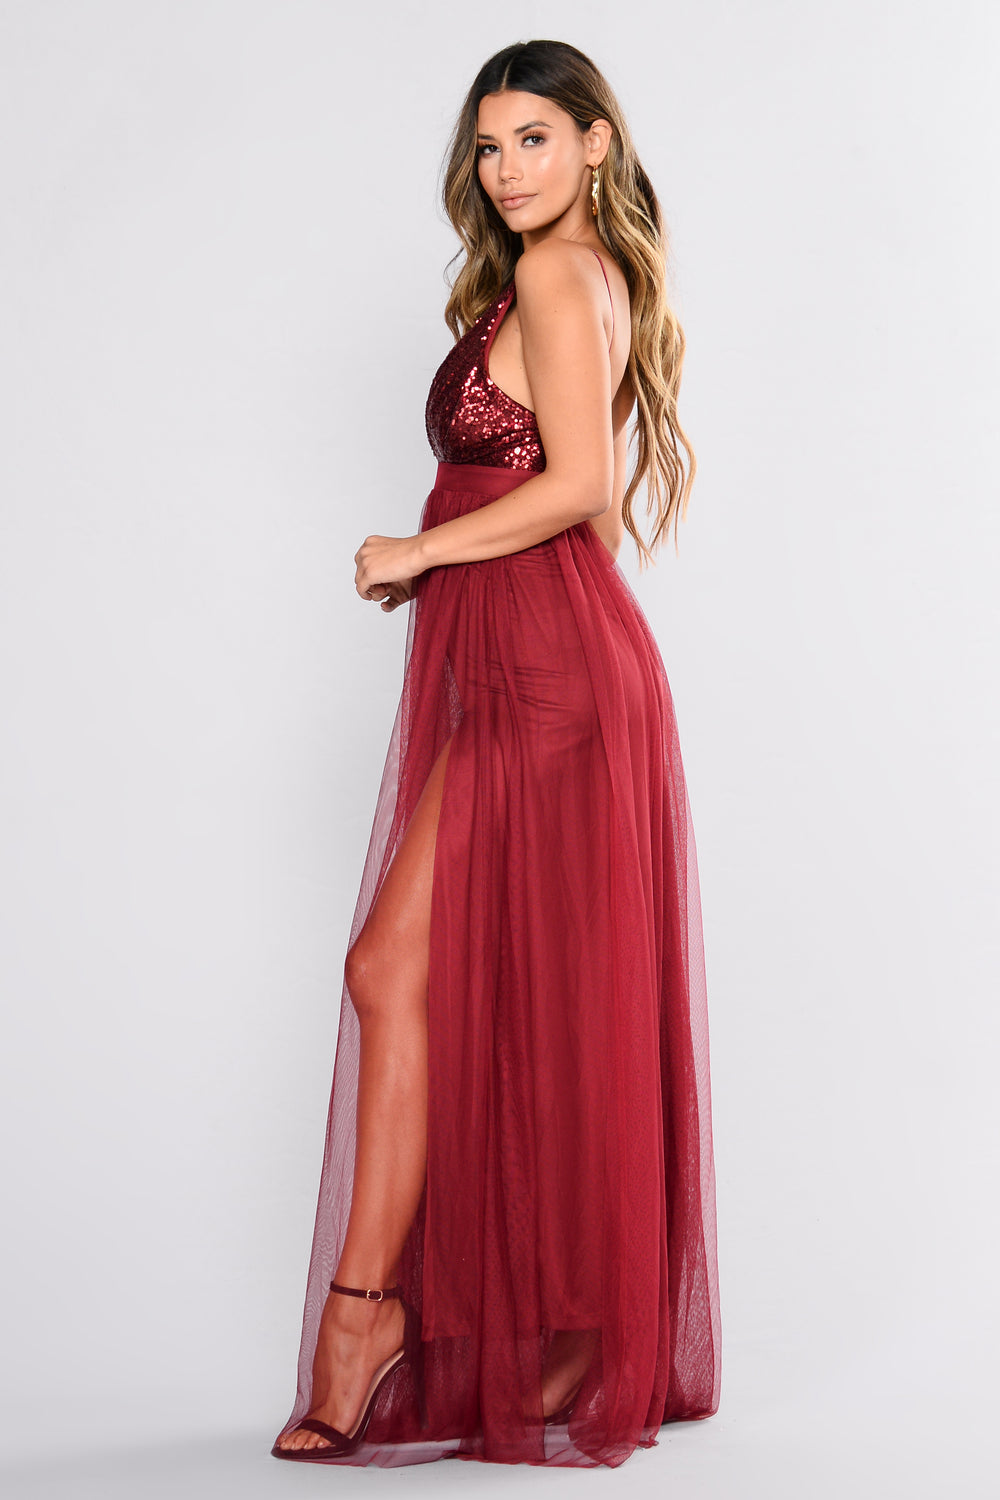 Starry Eyed Sequin Dress - Wine